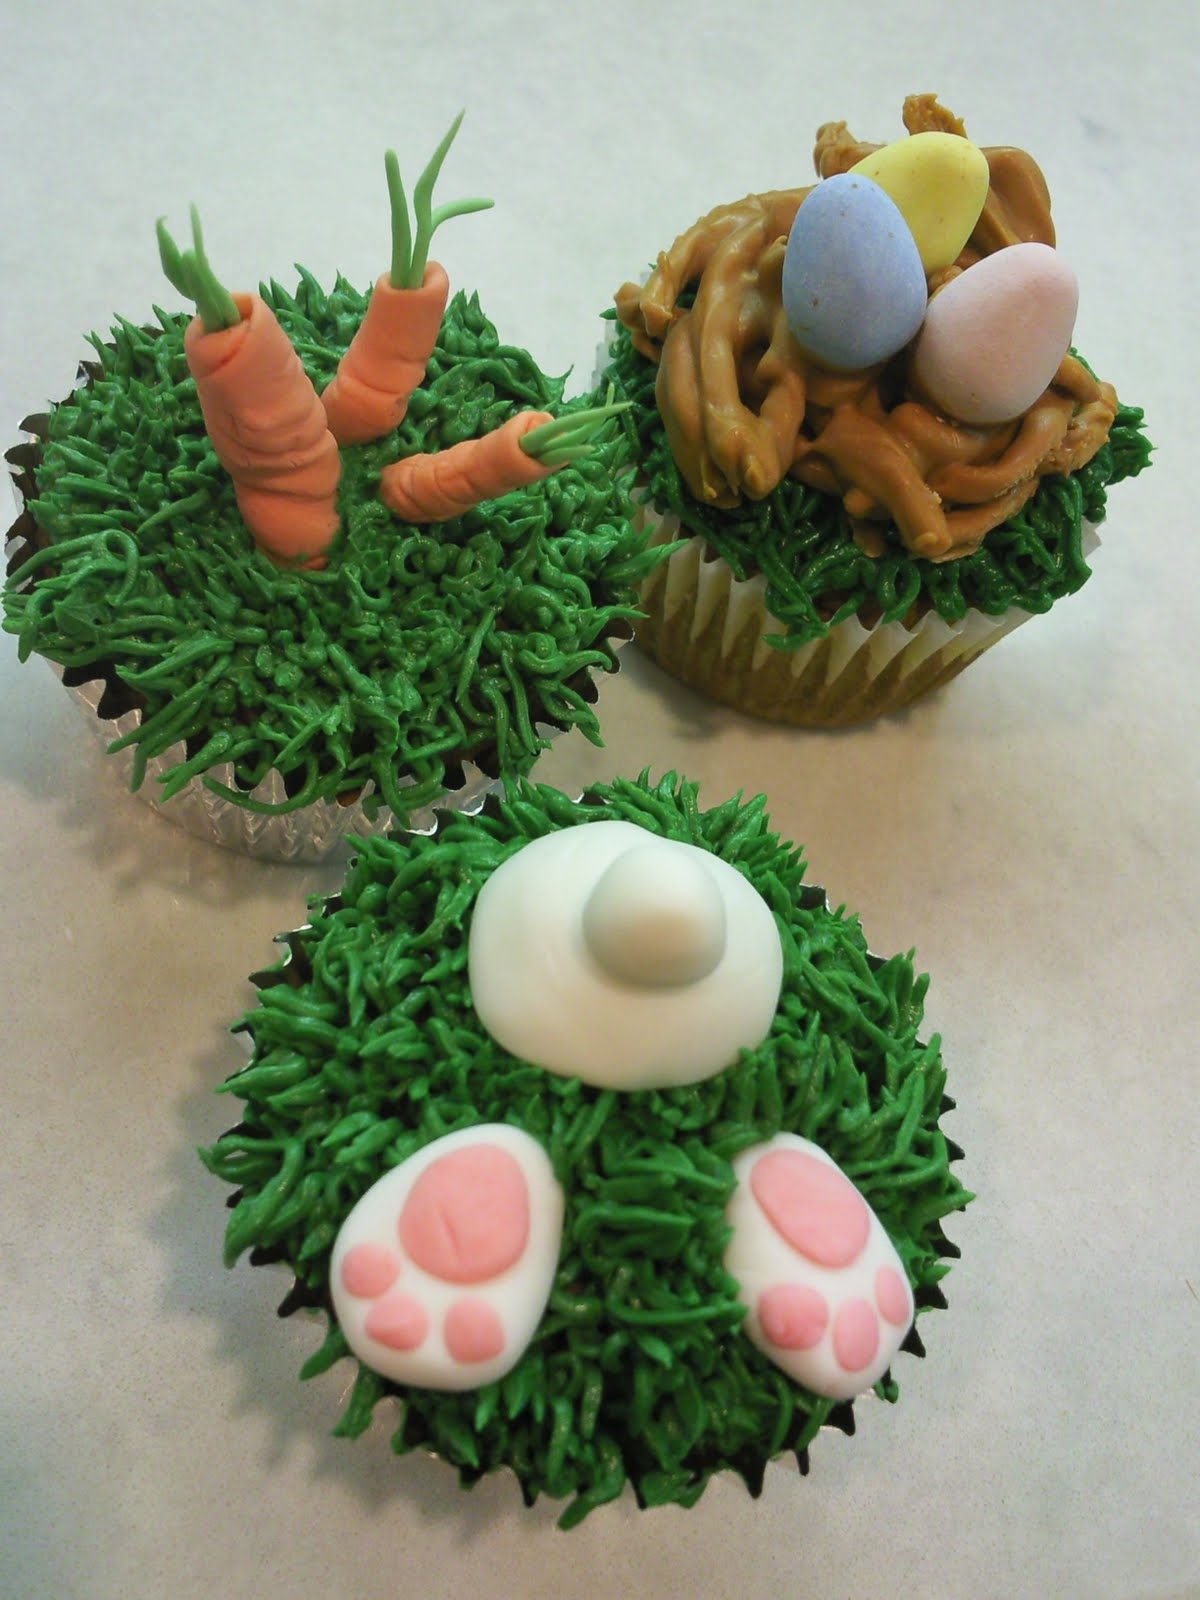 Sweet dreams happy easter cupcakes for Cute cupcake decorating ideas for easter